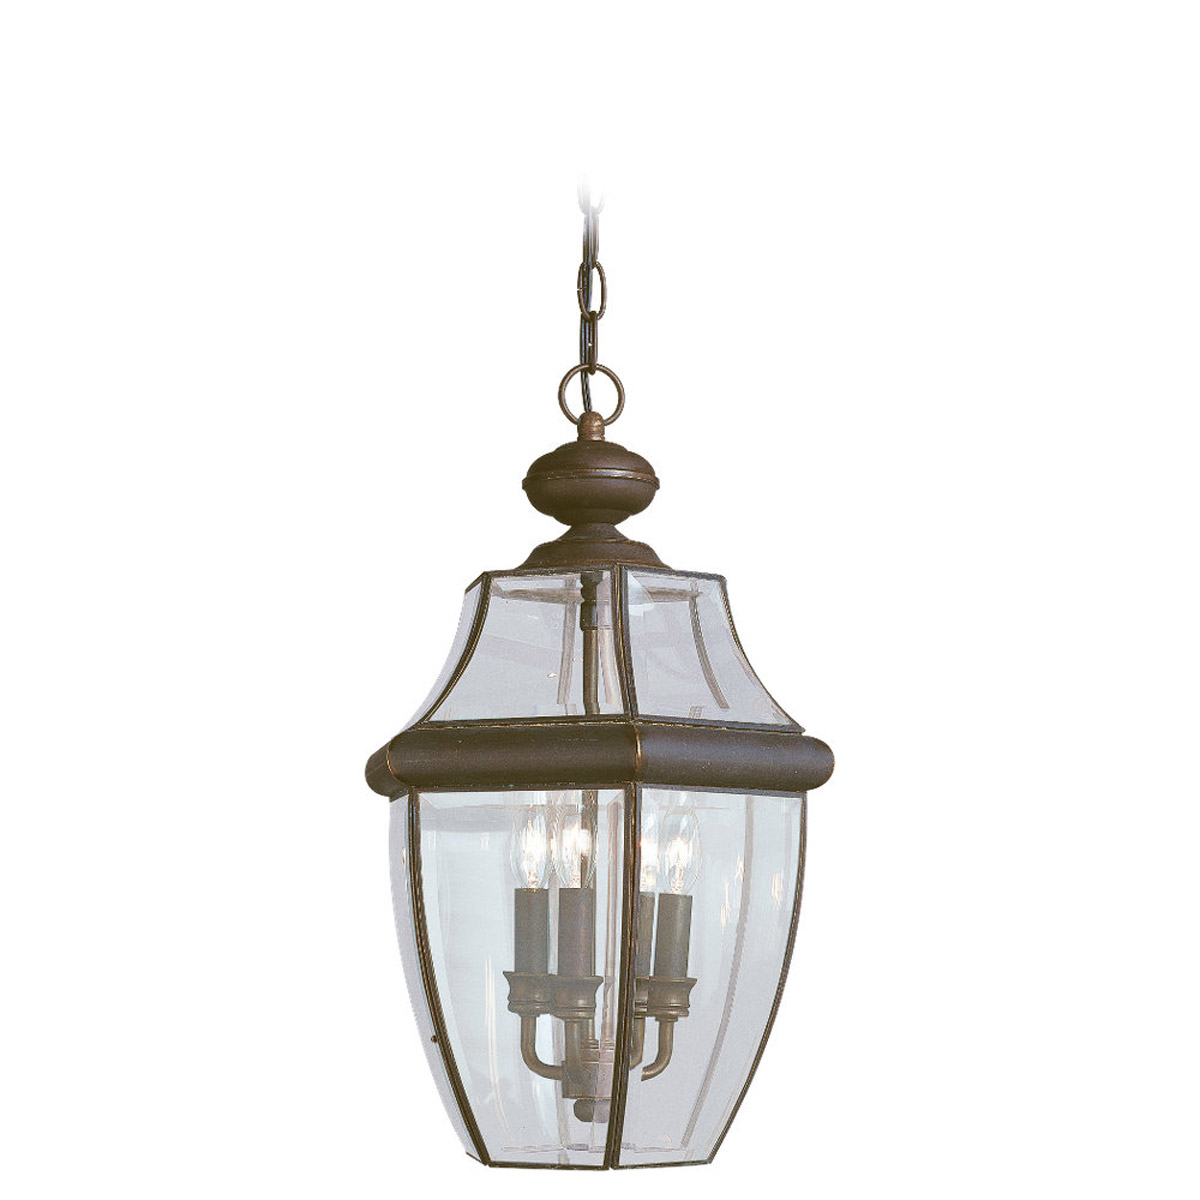 Sea Gull Lighting Lancaster 3 Light Outdoor Pendant in Antique Bronze 6039-71